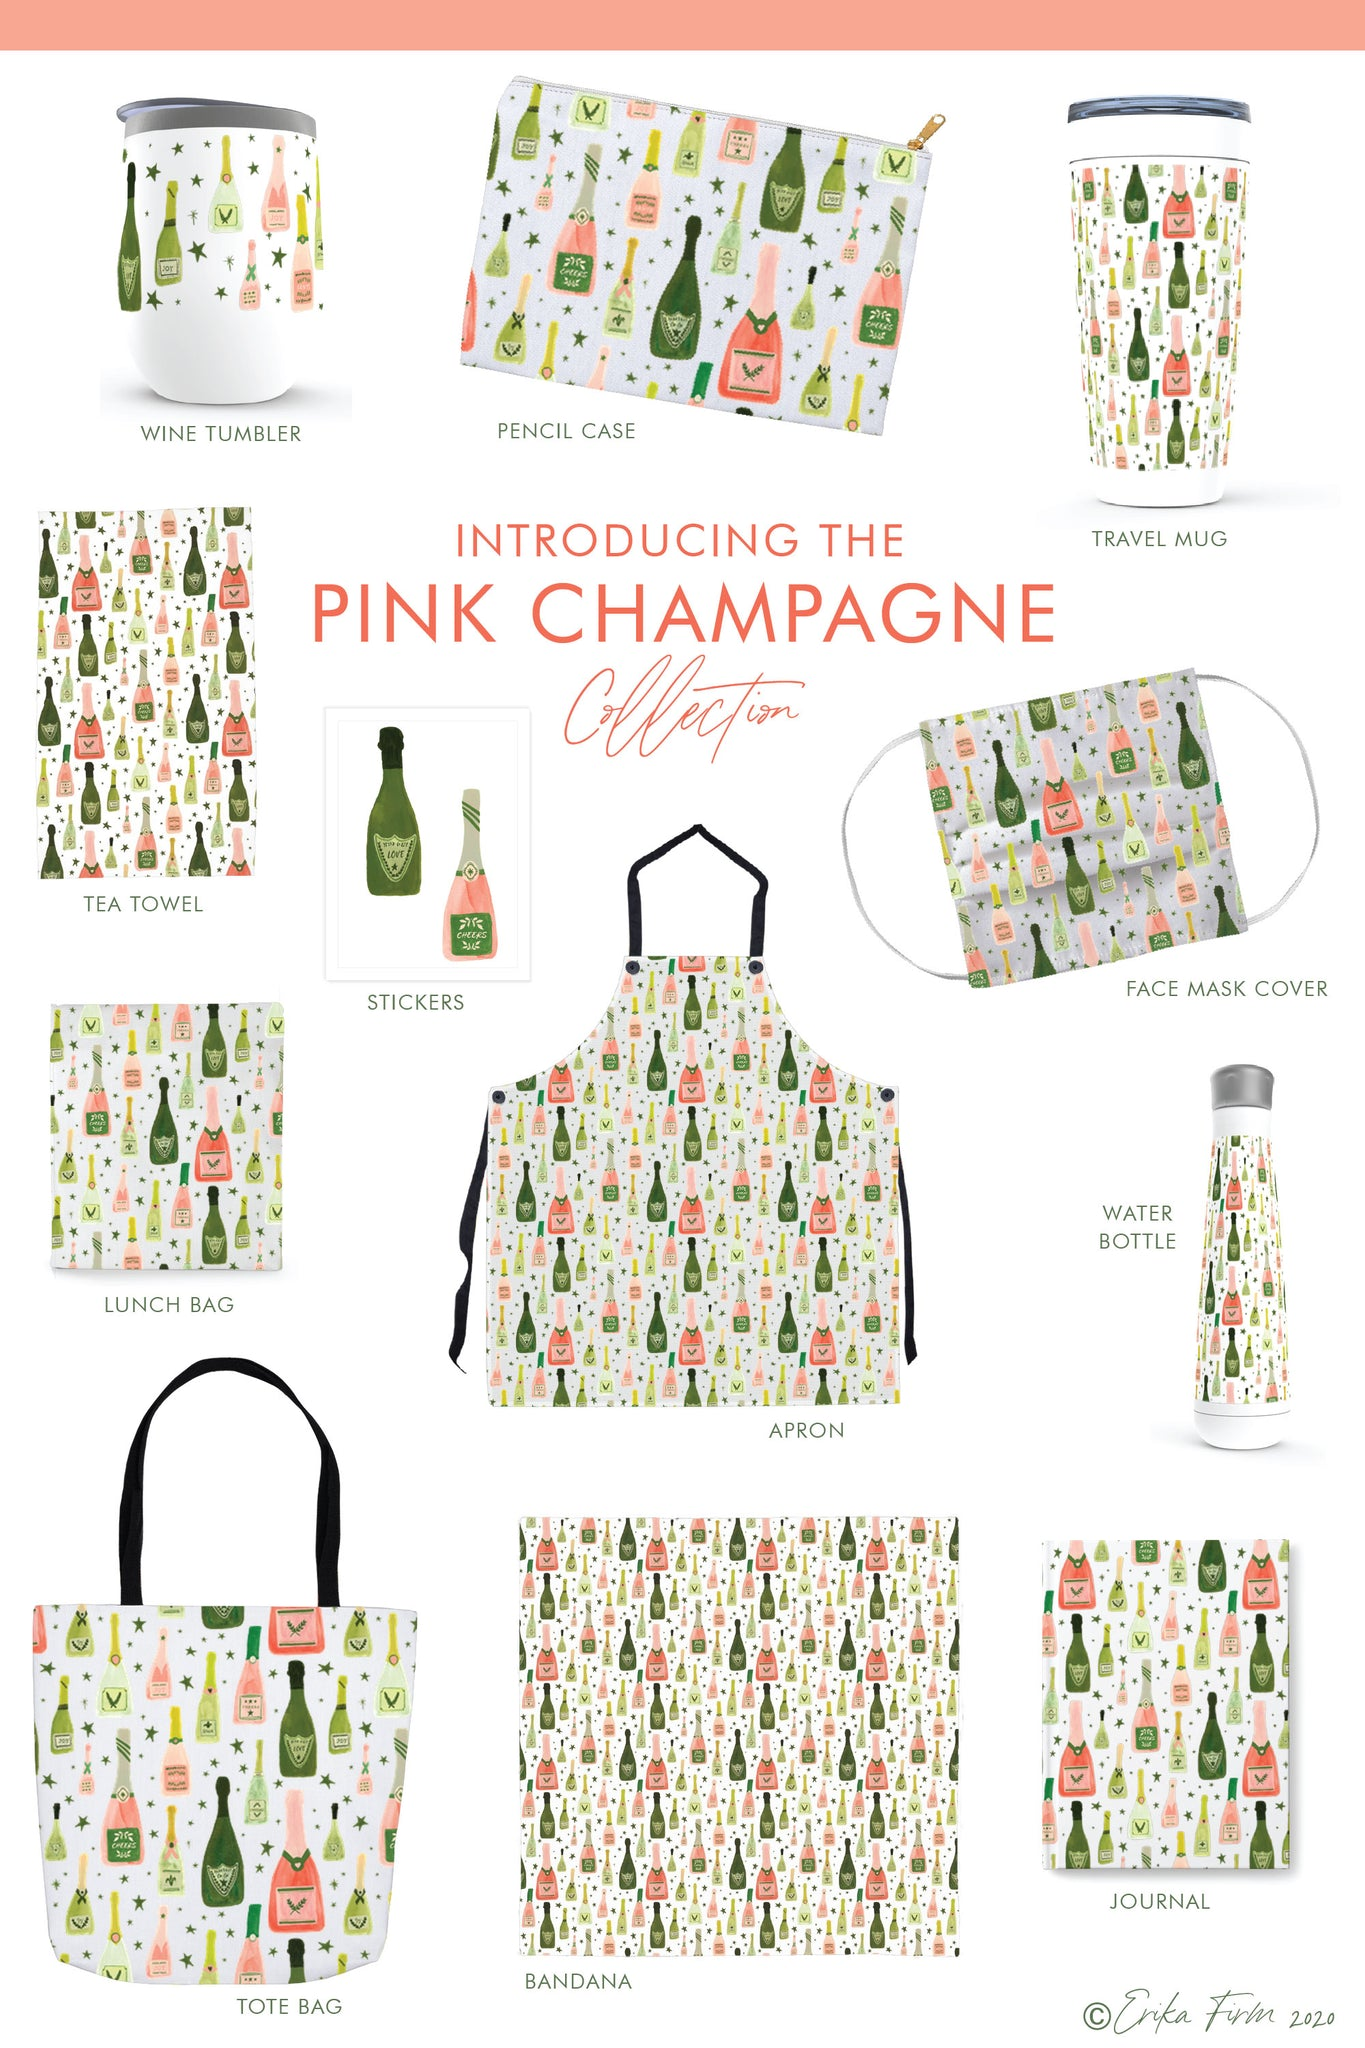 New Pink Champagne Collection by Erika firm